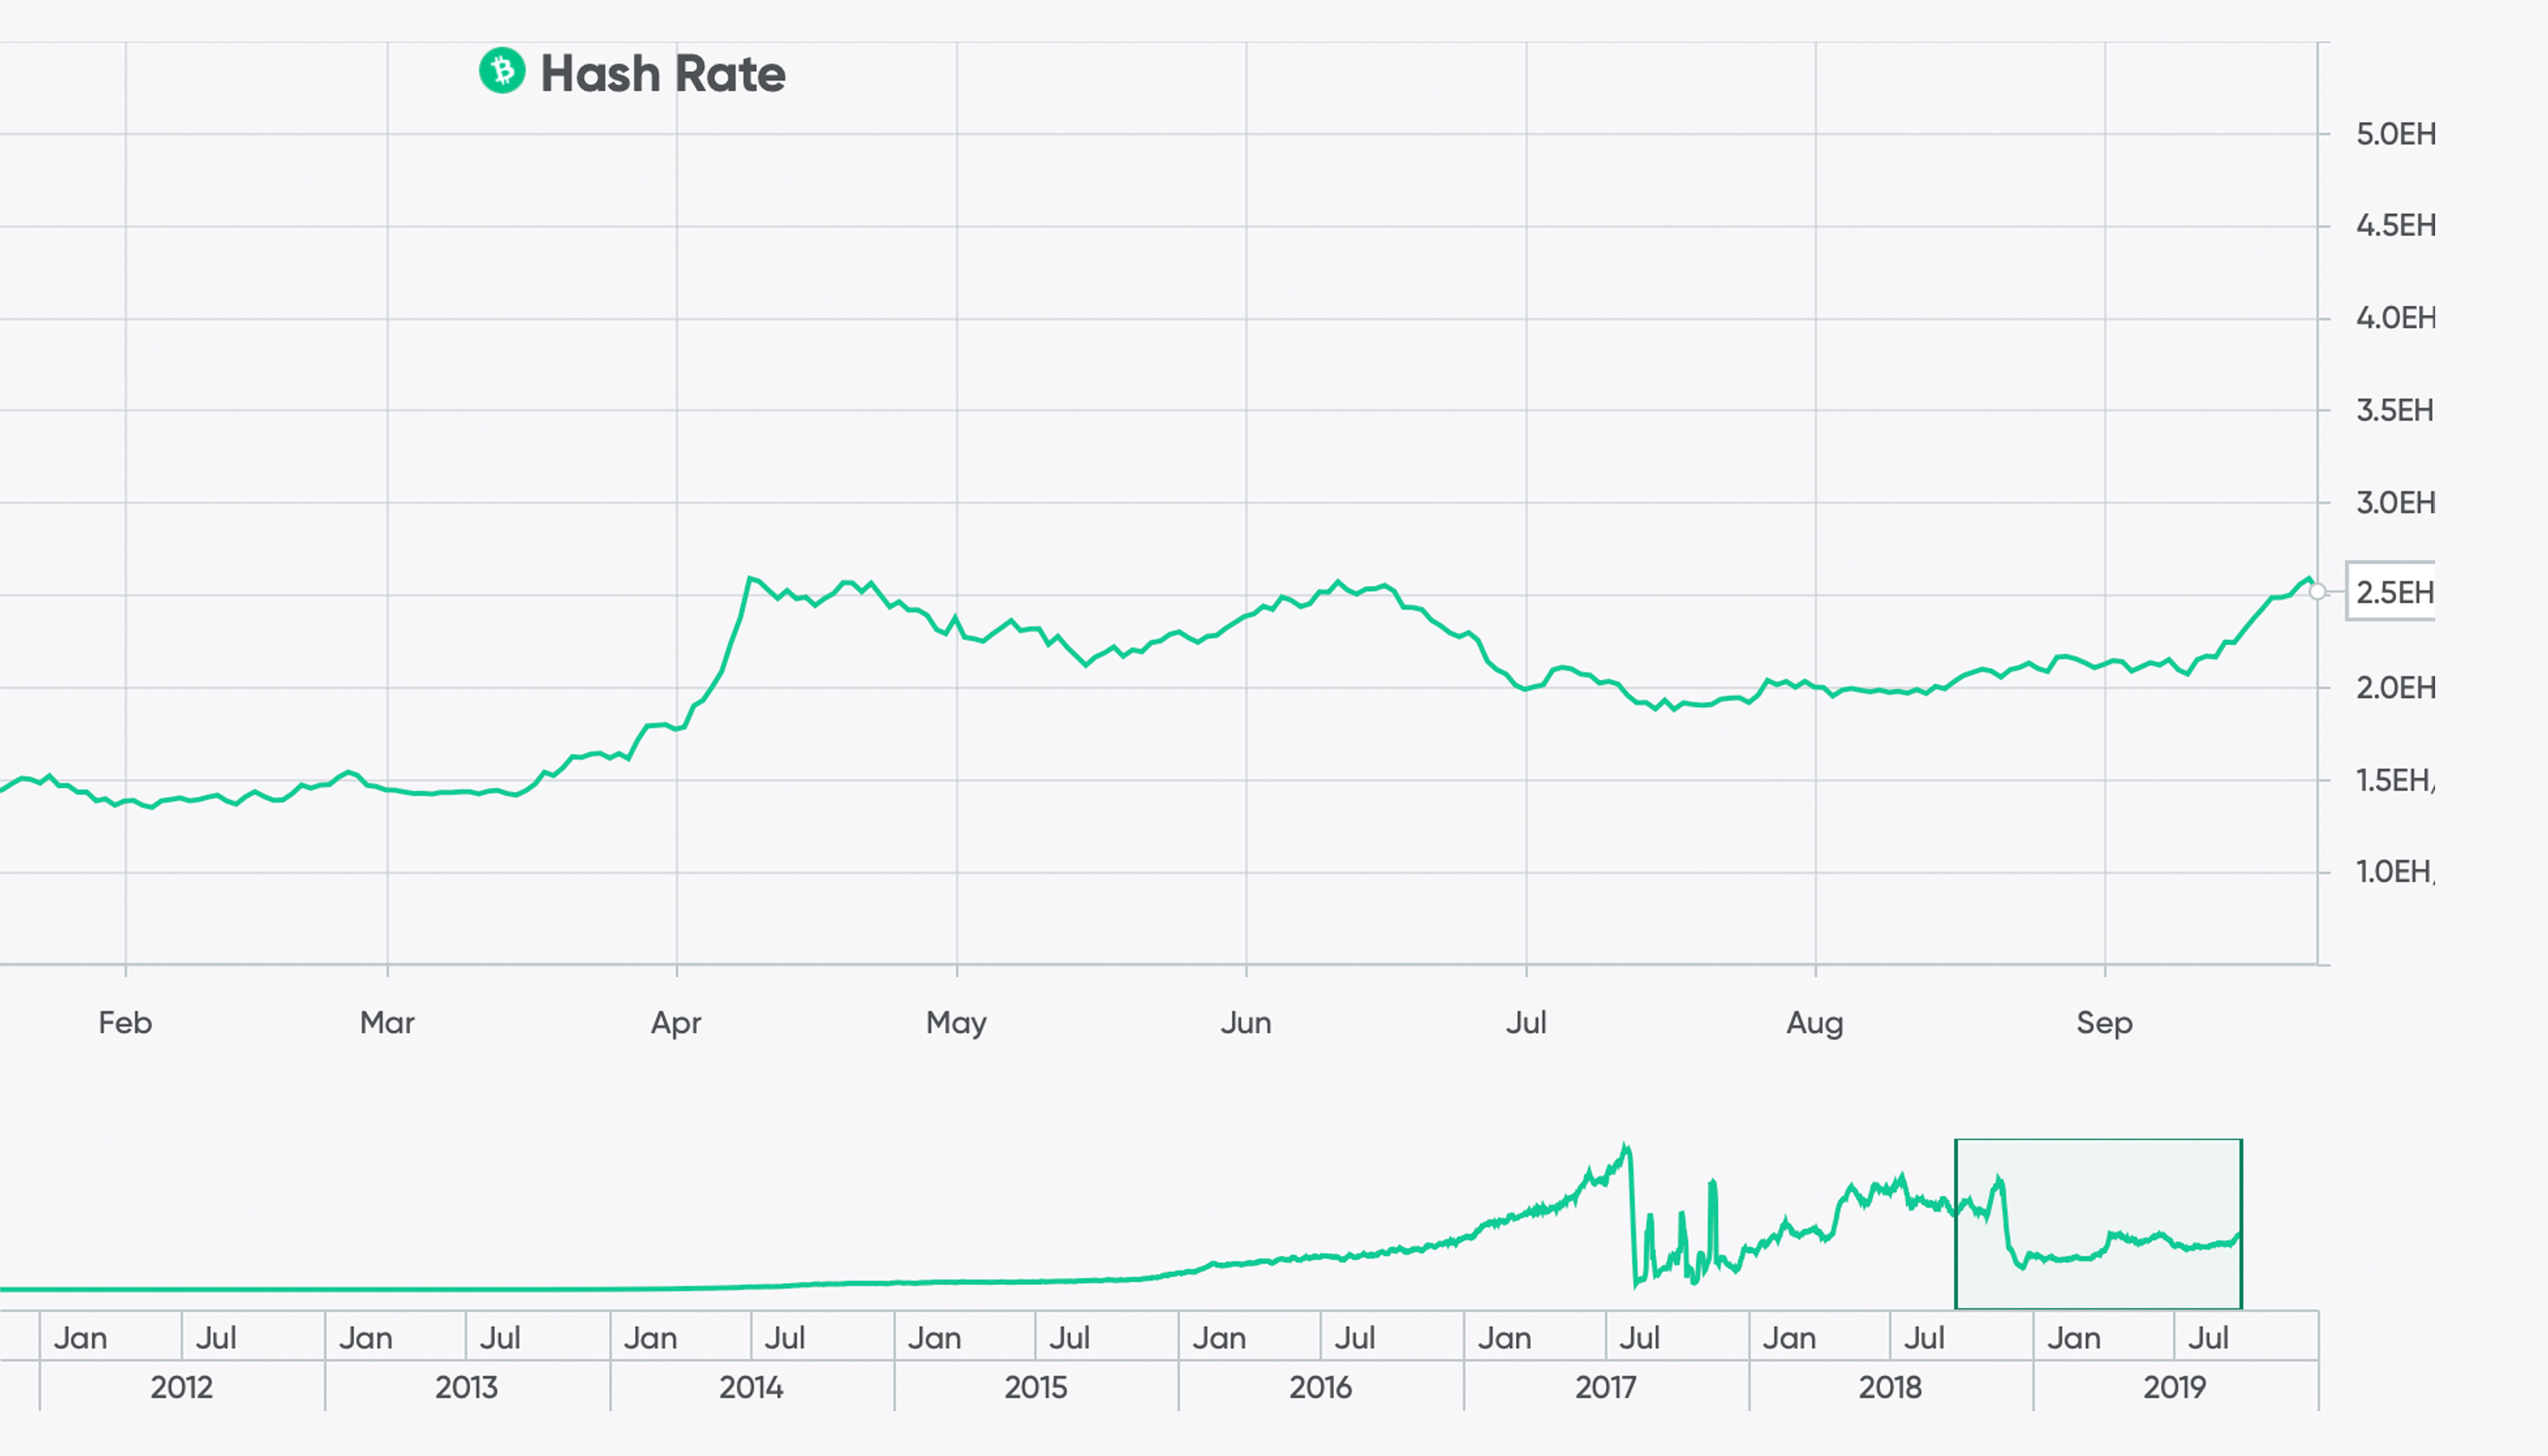 Despite Lower Prices, Bitcoin's Hashrate Remains Strong